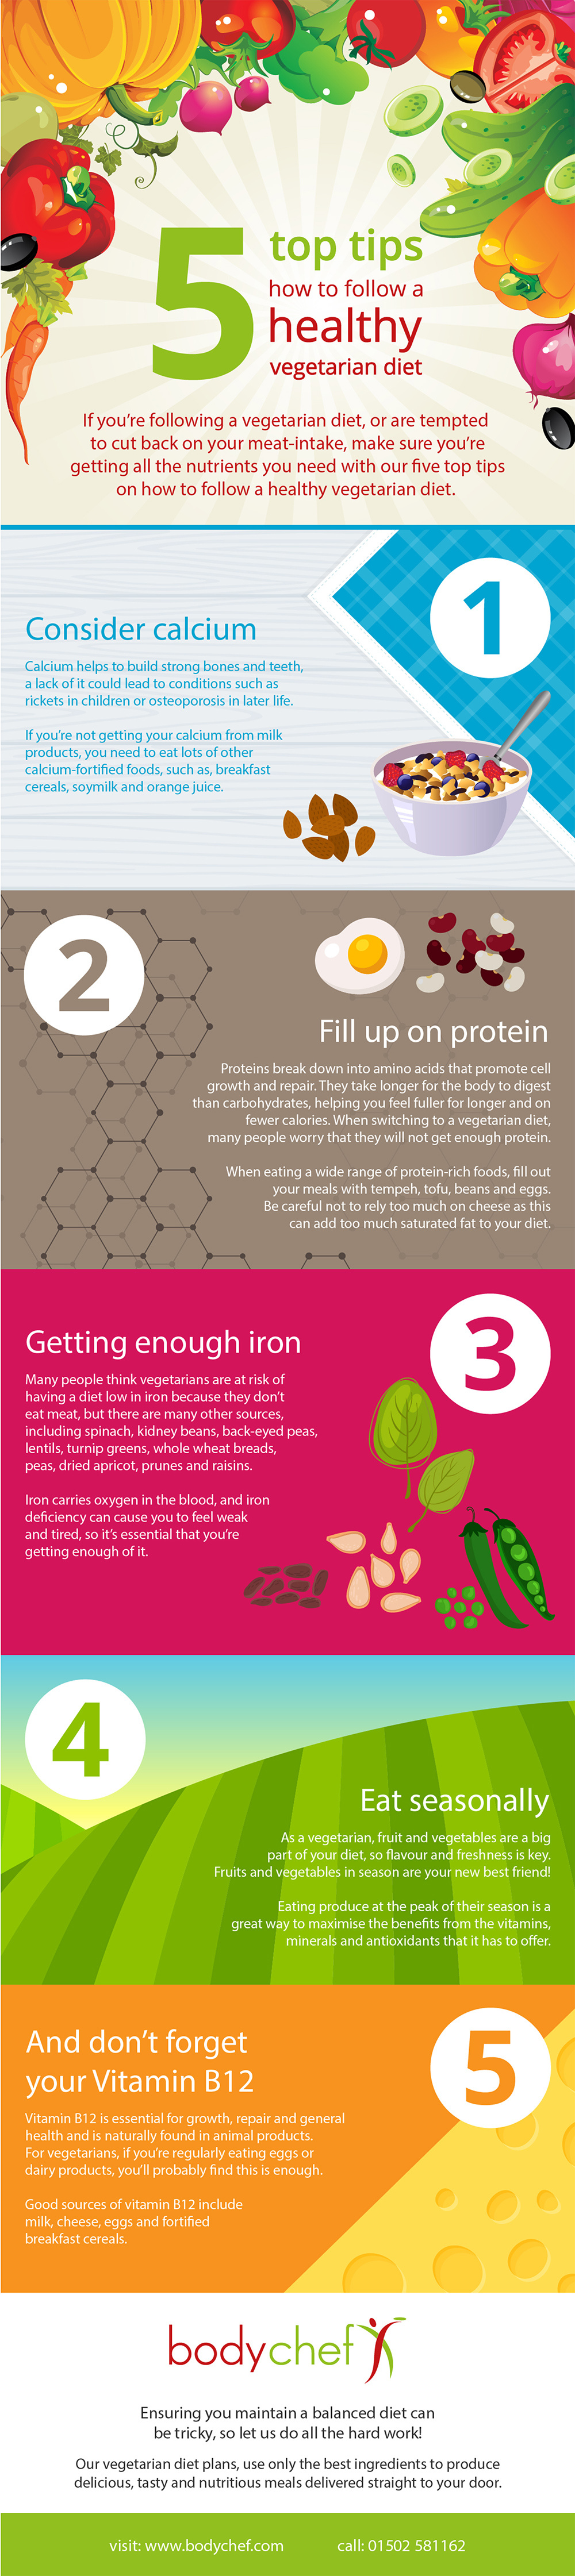 5-tops-tips-on-how-to-be-a-healthy-vegetarian-1000